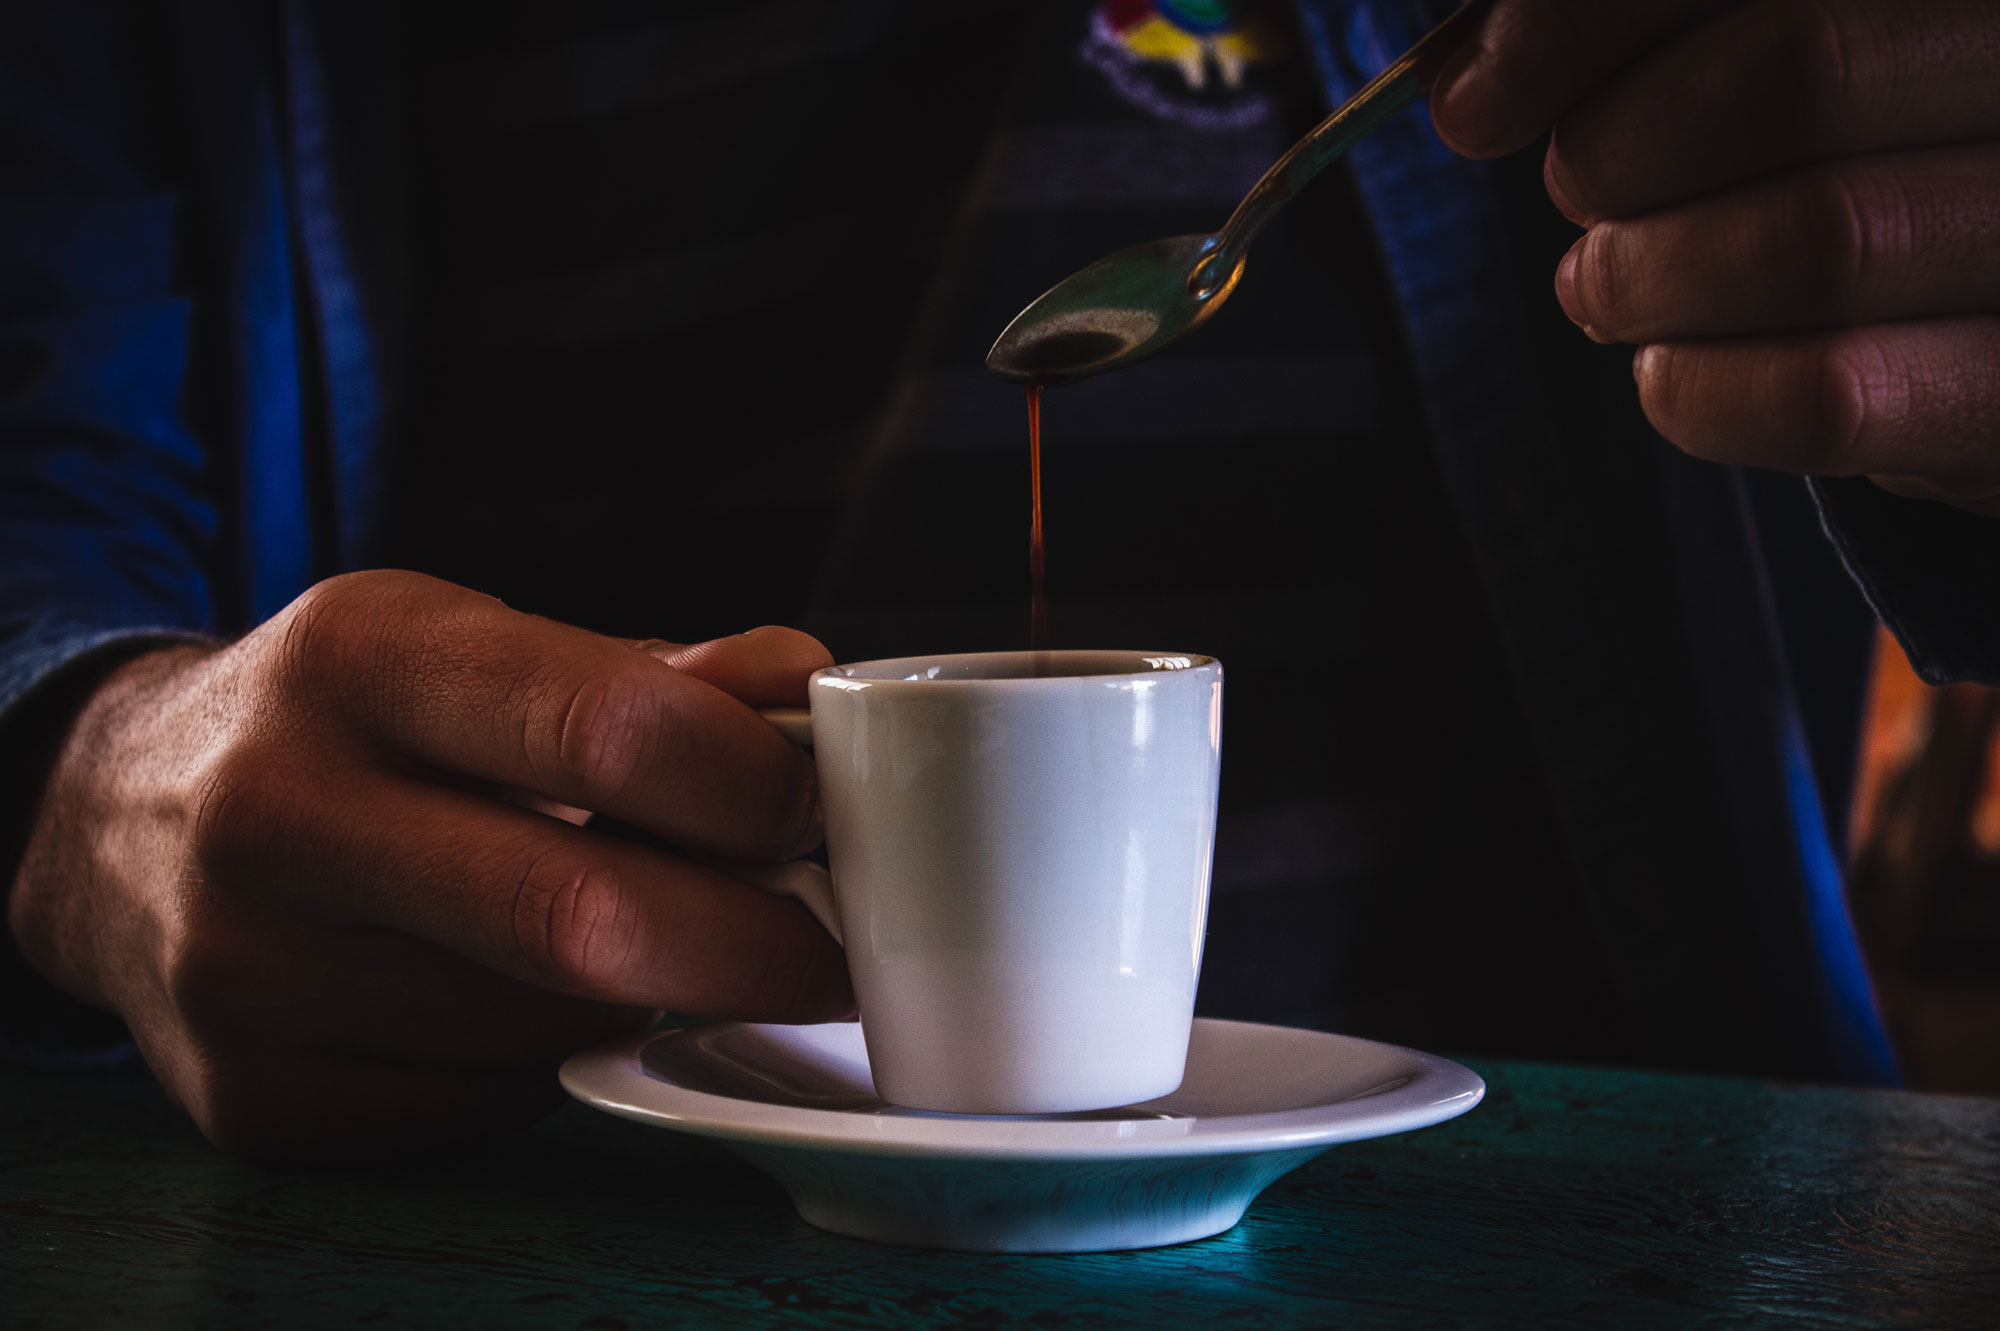 a person lifting a teaspoon from a cup of coffee